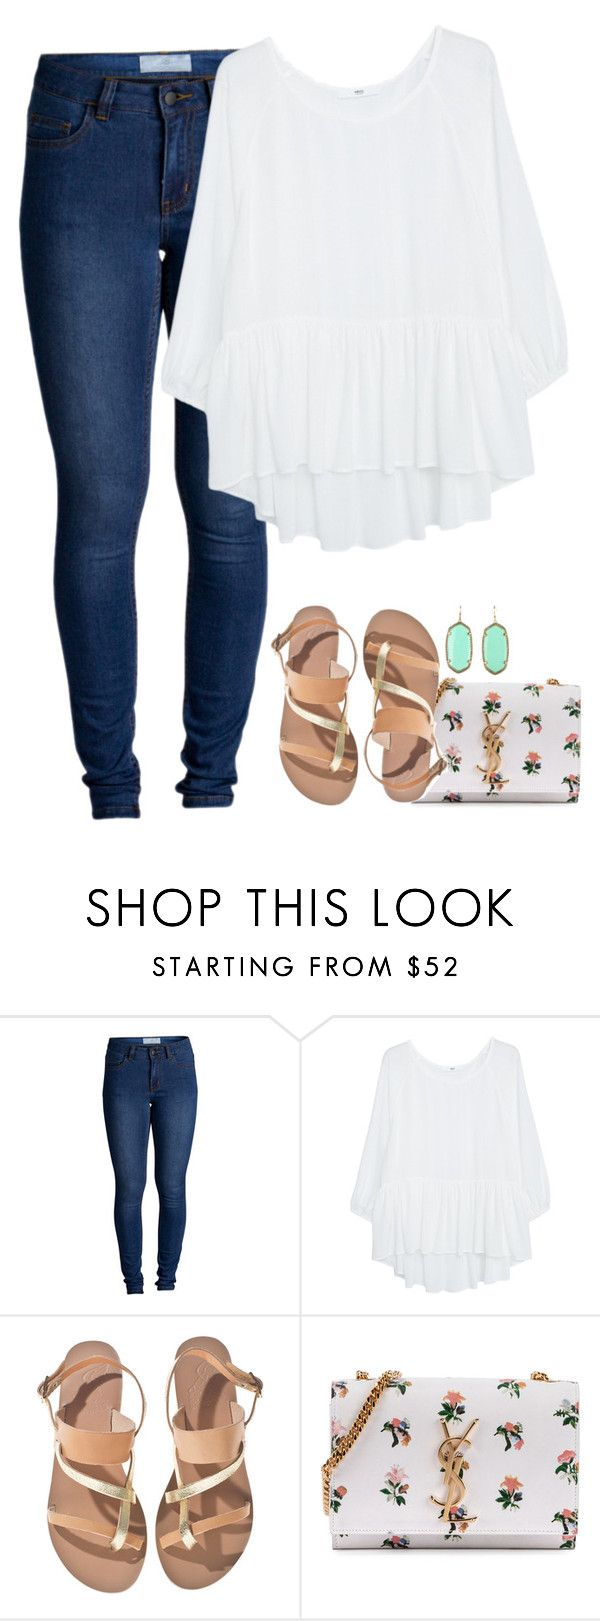 """""""Counting down the days until my bae summer is back..."""" by meljordrum ❤ liked on Polyvore featuring Pieces, MANGO, Ancient Greek Sandals, Yves Saint Laurent and Kendra Scott"""